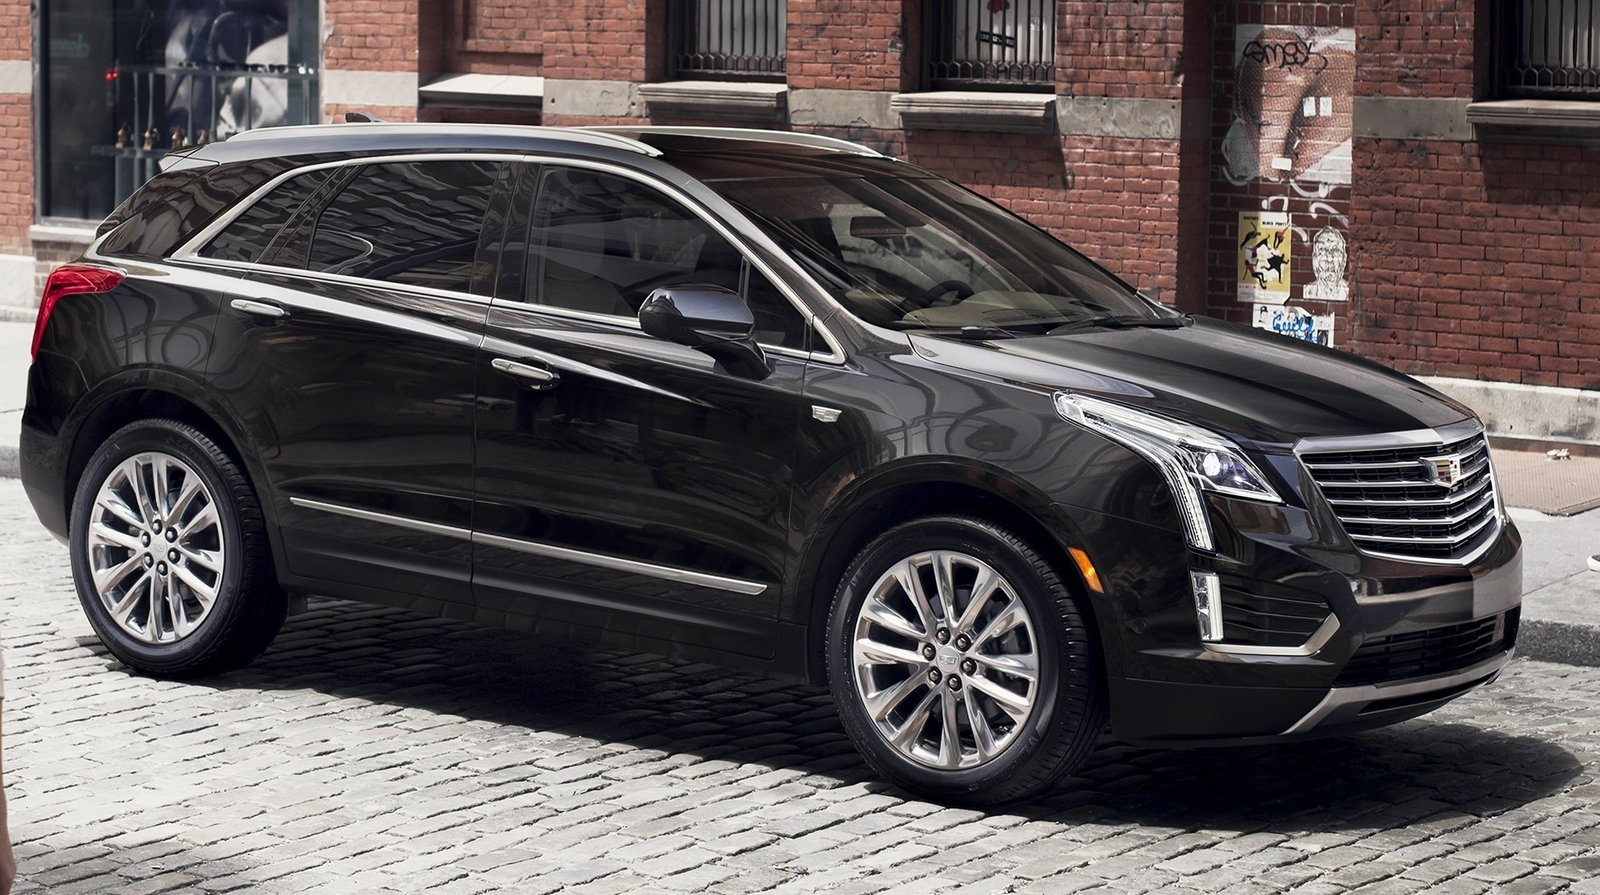 2017 cadillac xt5 picture 645341 car review top speed. Black Bedroom Furniture Sets. Home Design Ideas